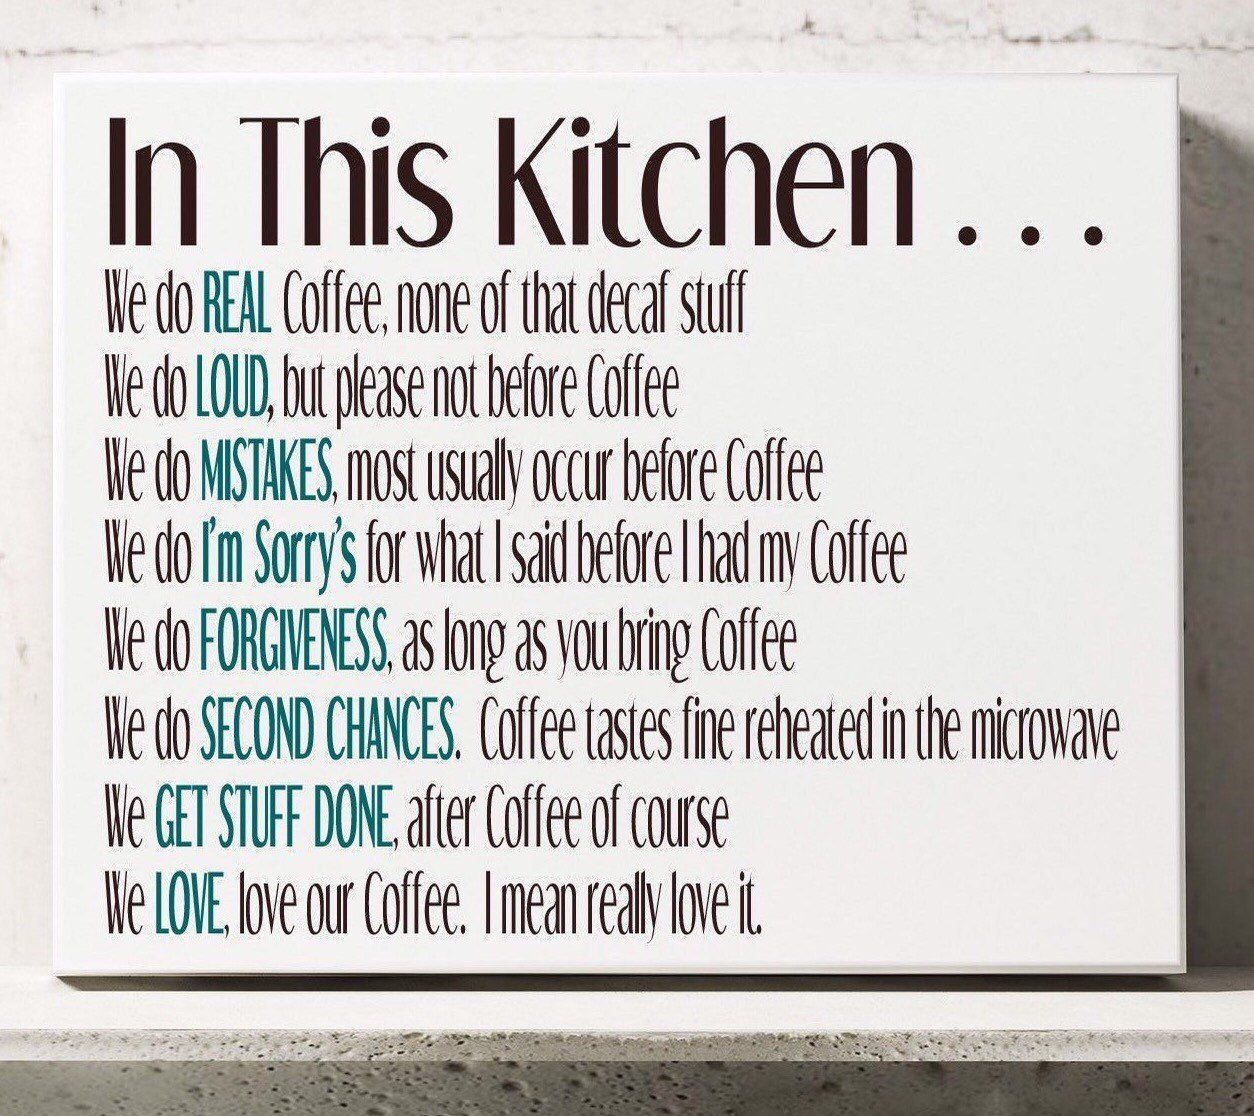 Kitchen Rules Canvas, All About Coffee, House Rules, Funny, Coffee, In this House We, In This Kitchen, Coffee Lovers #kitchenrules